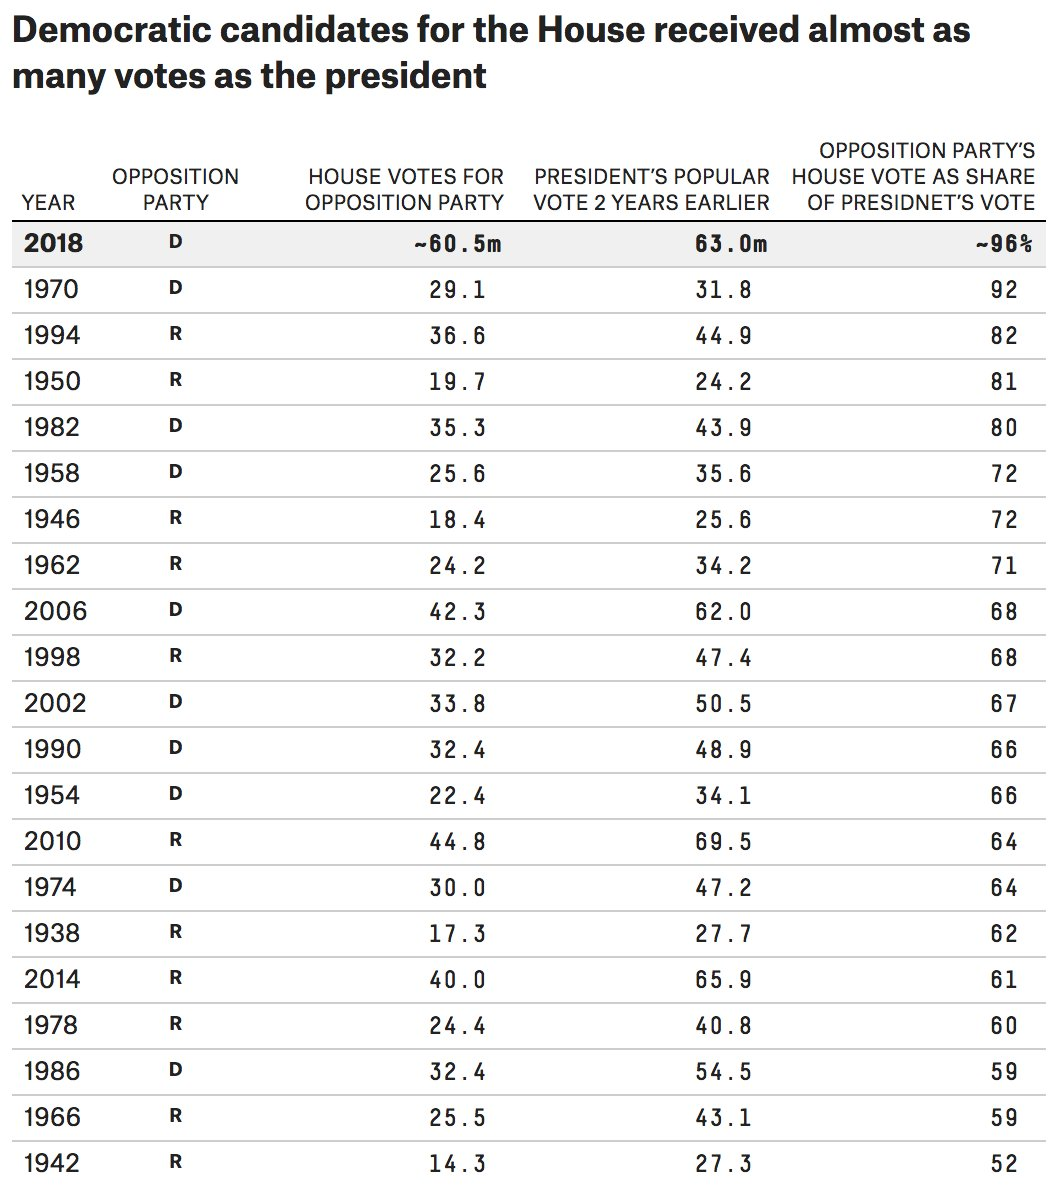 There's not any precedent for an opposition party coming this close to matching the president's vote total from 2 years earlier. The closest to an exception was when Democratic House candidates in 1970 got 92% of Nixon's vote total from 1968. https://t.co/NOTLQnYI9z